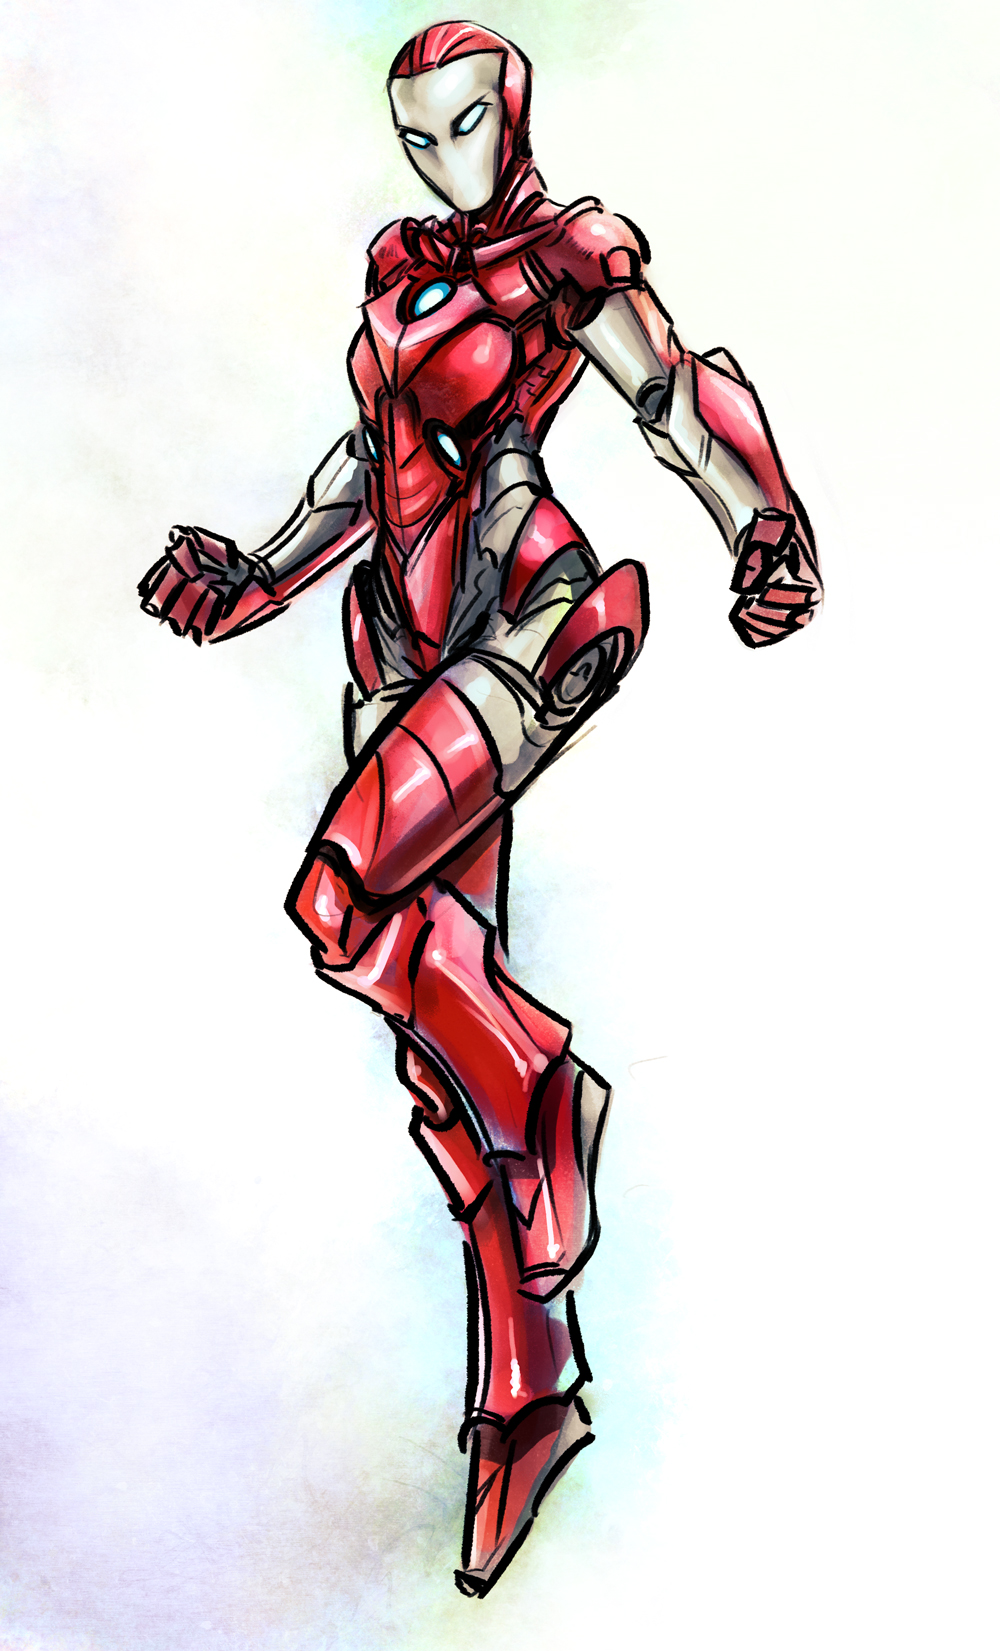 Iron Man Lady - request by Psuede on DeviantArt